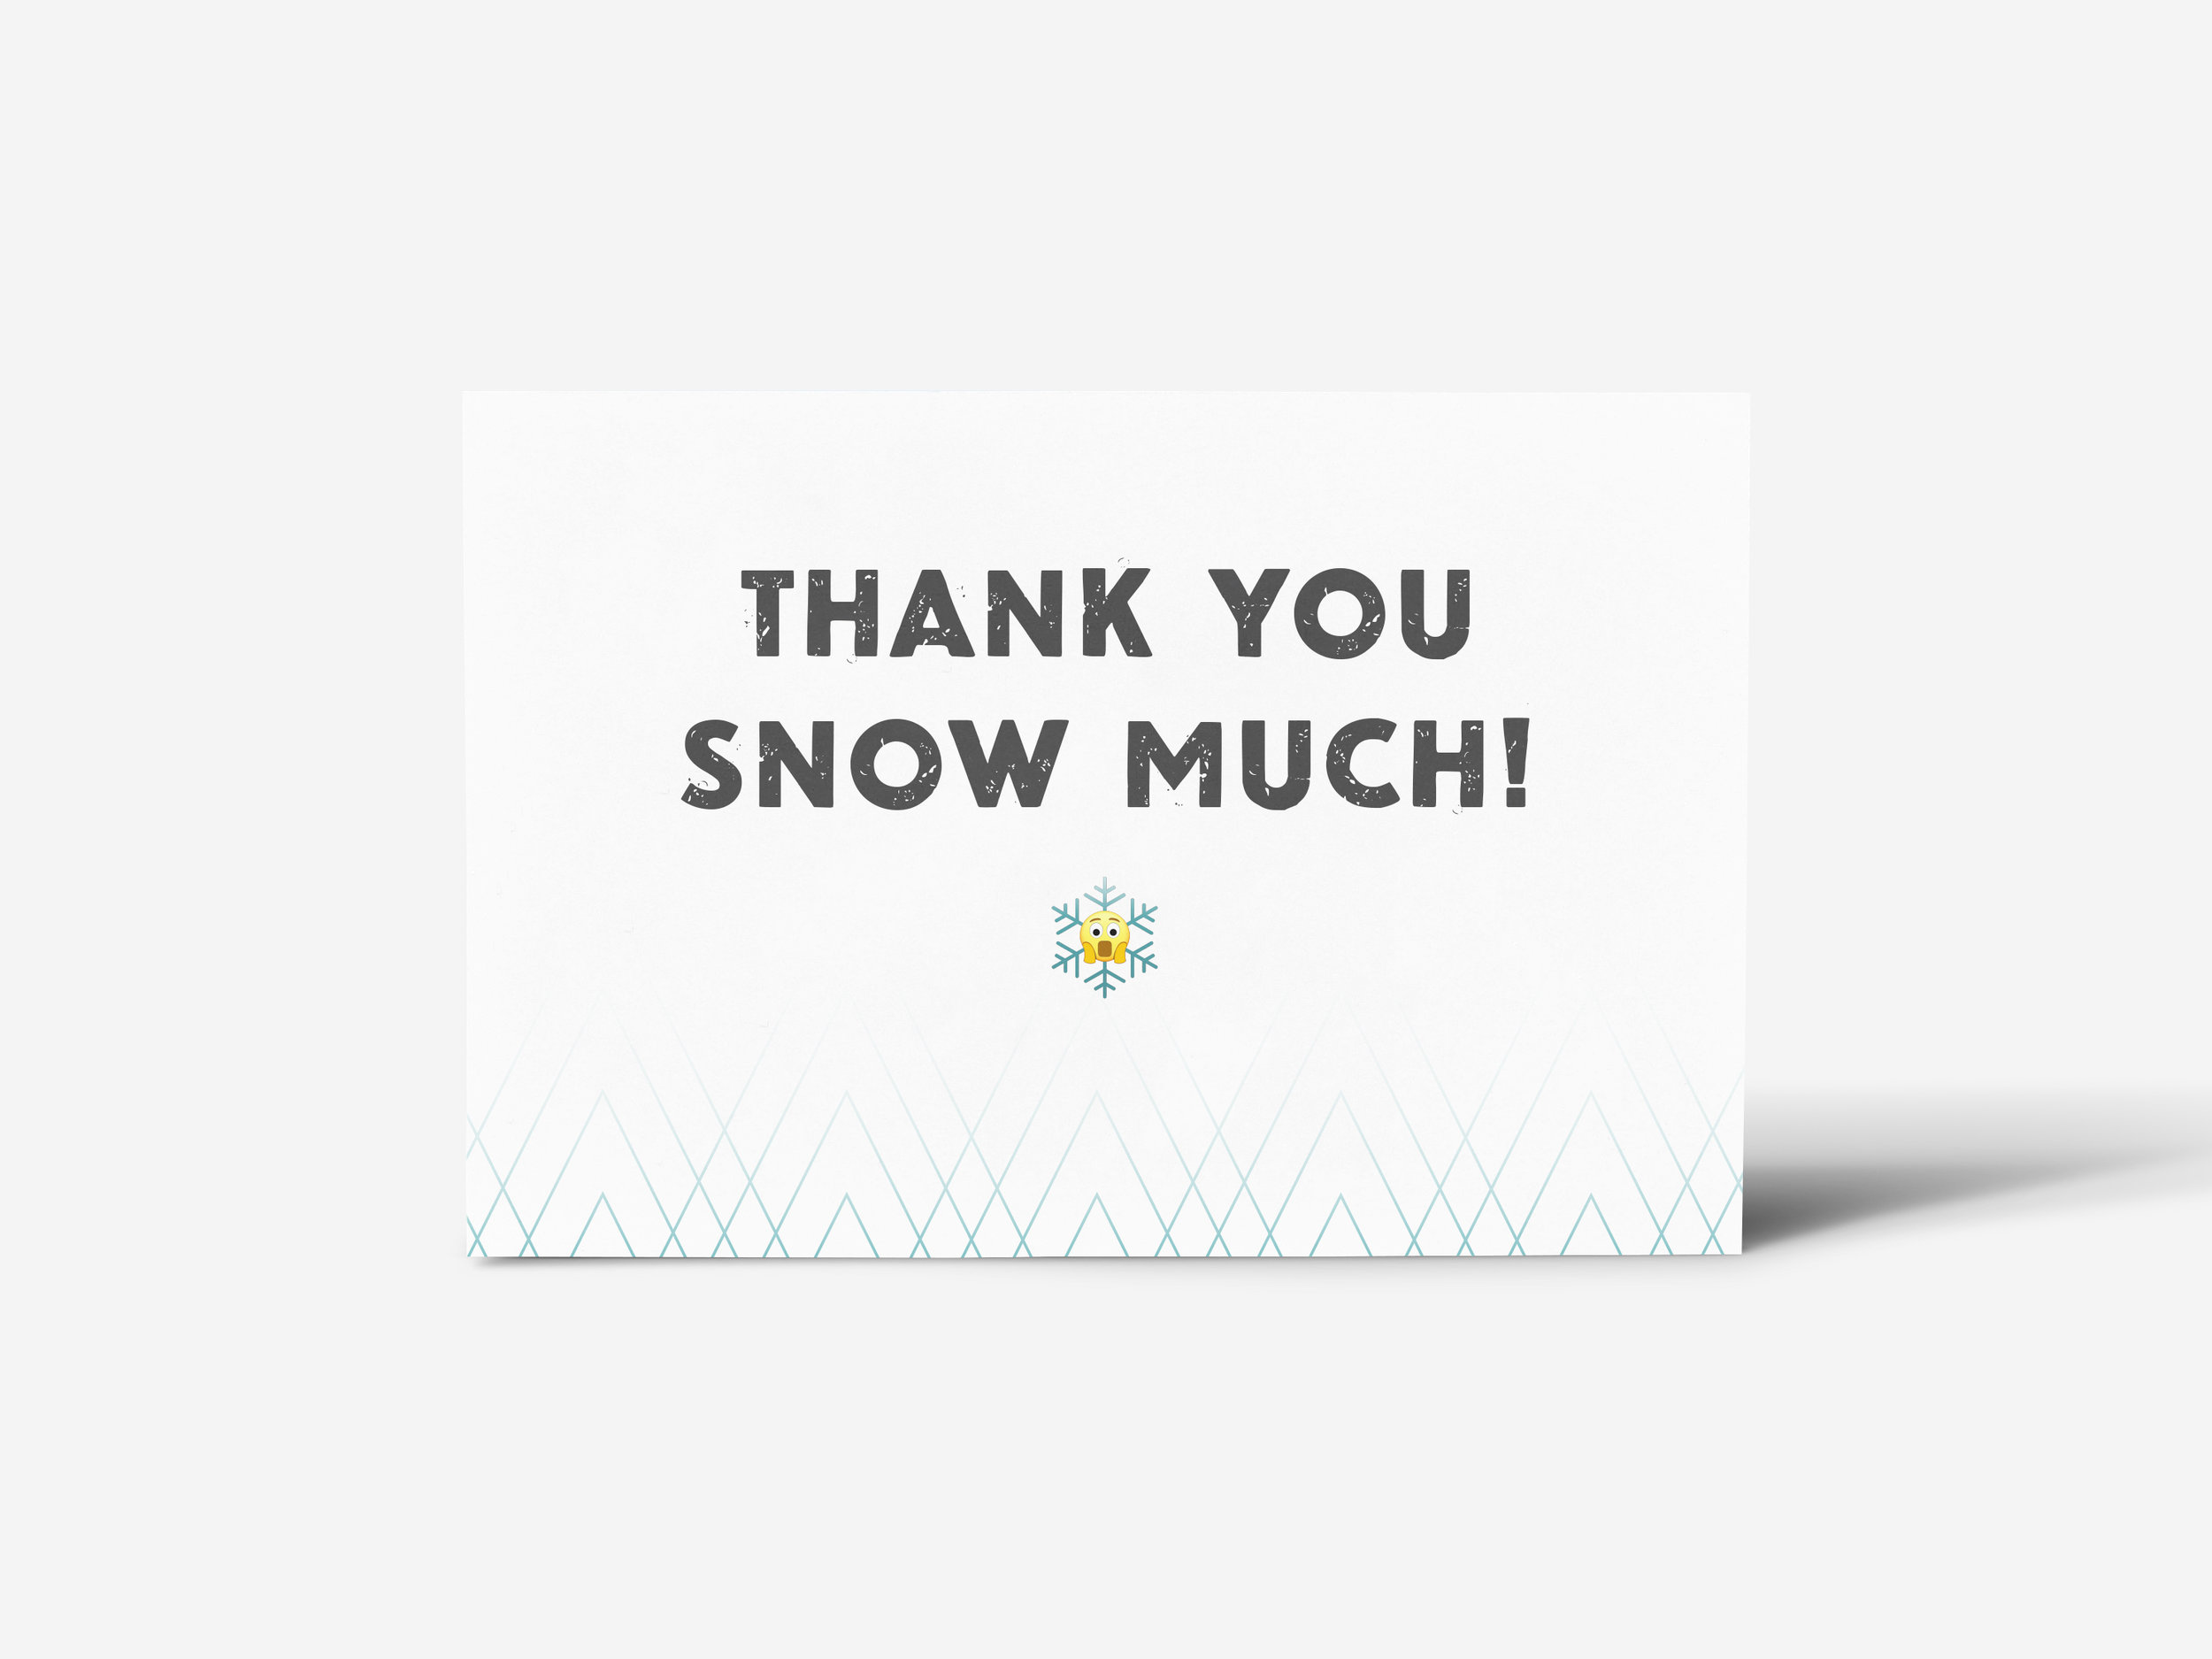 Snow-M-G!--thank-you-front.jpg